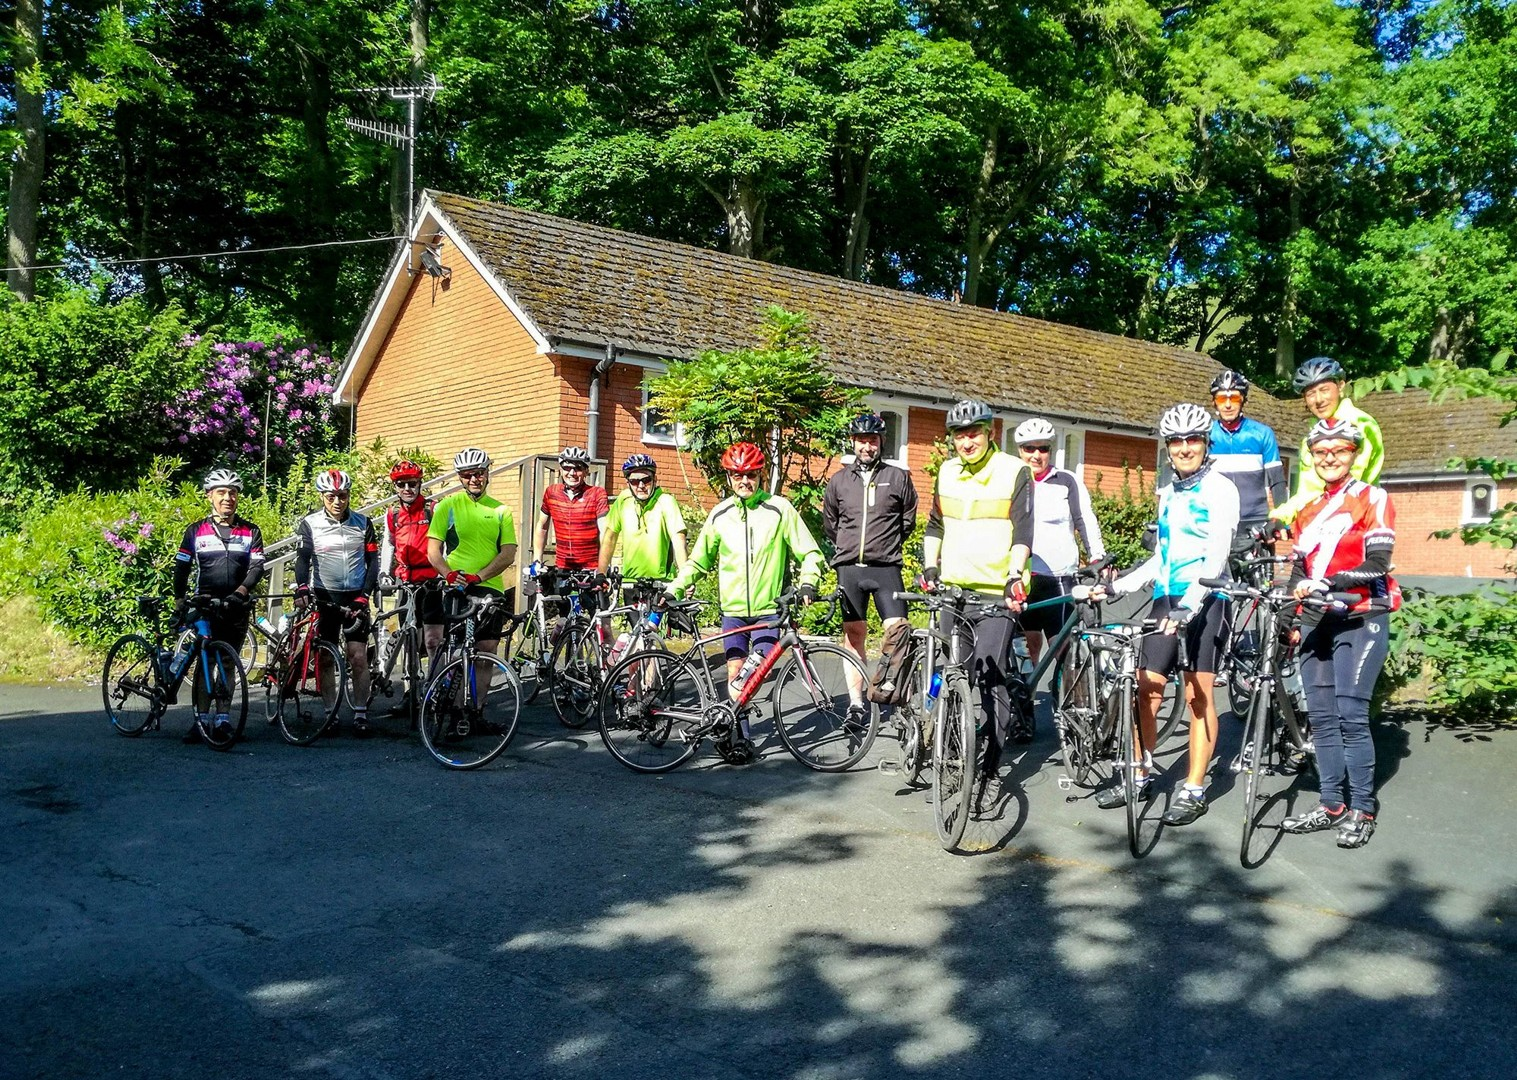 _Customer.66005.34518.jpg - UK - South Shropshire - Guided Road Cycling Weekend - Road Cycling